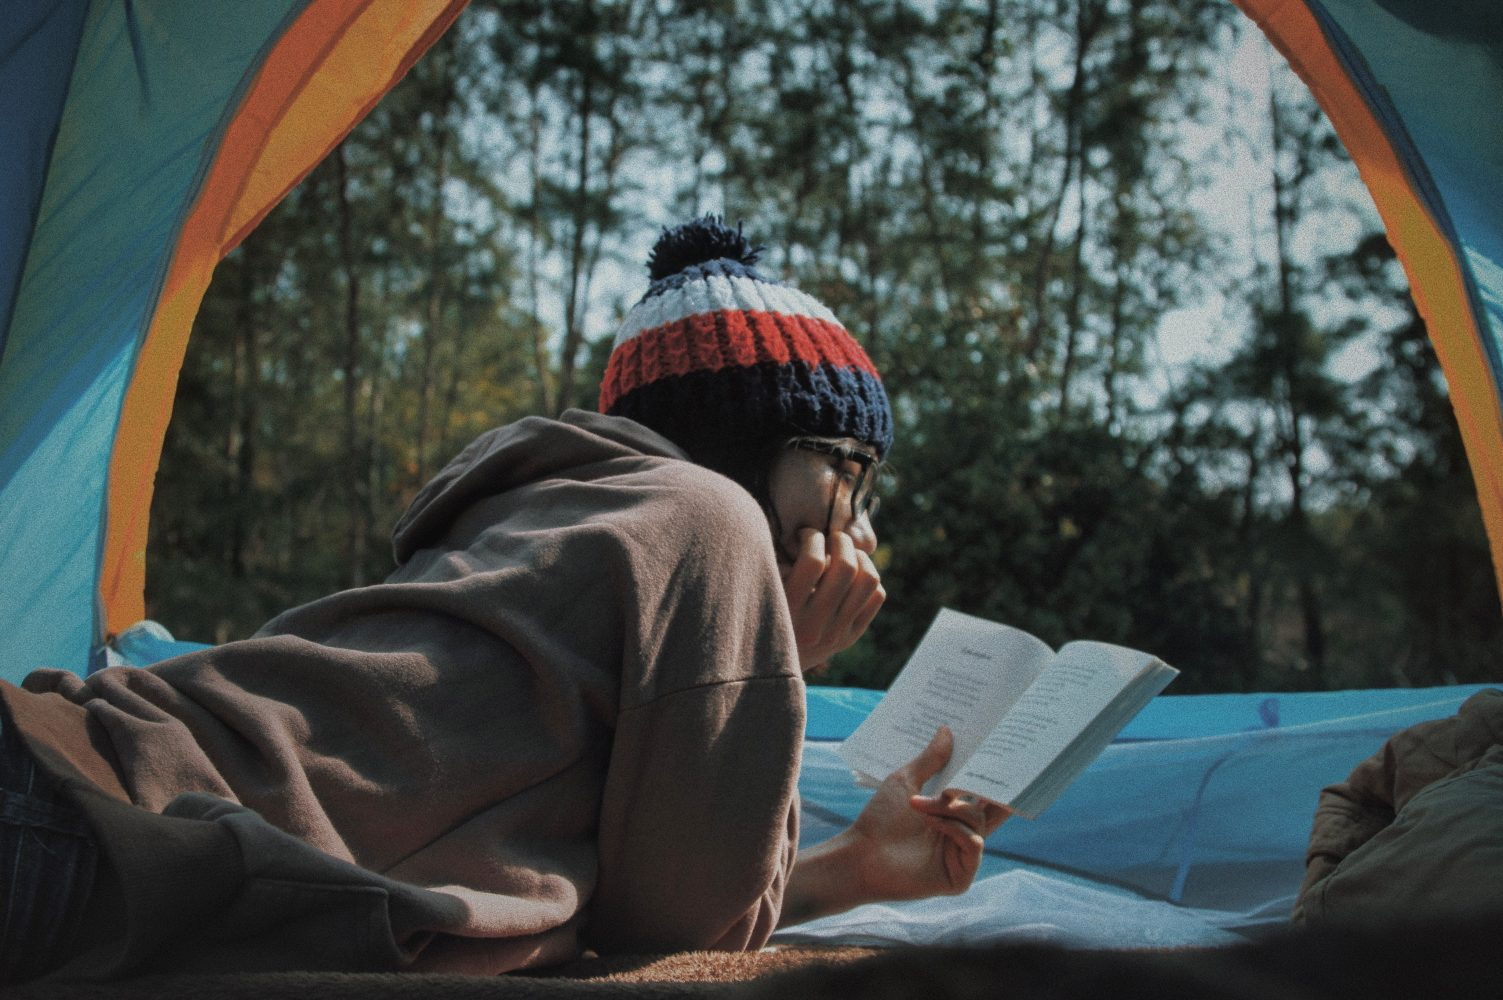 Reading inside tent